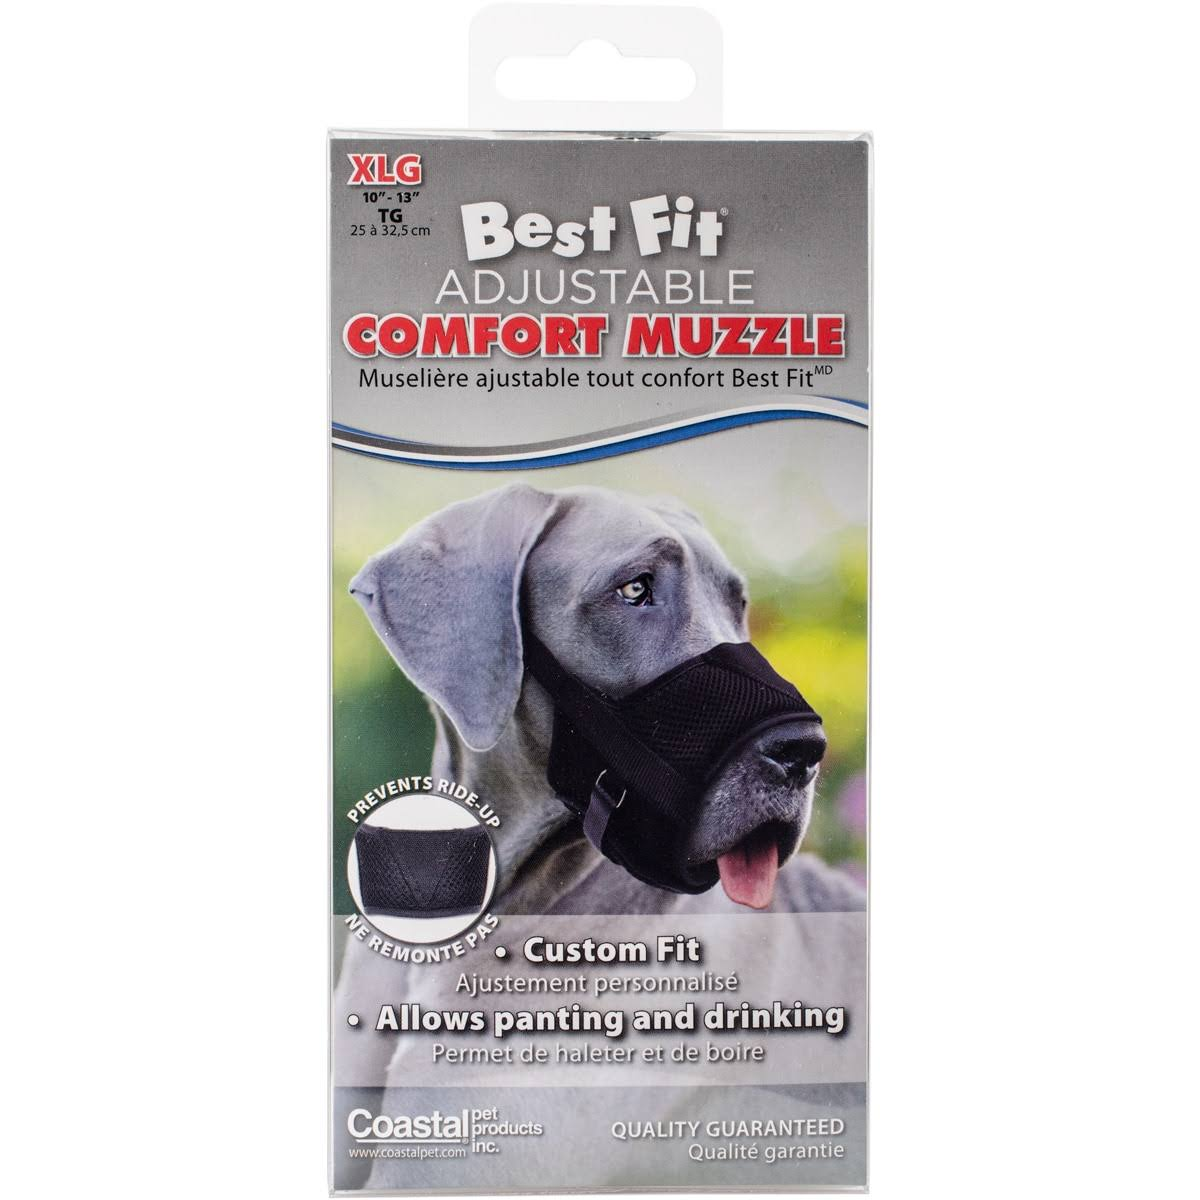 Best Fit Adjustable Comfort Dog Muzzle-Black, Snout Size 10 inch -13 inch